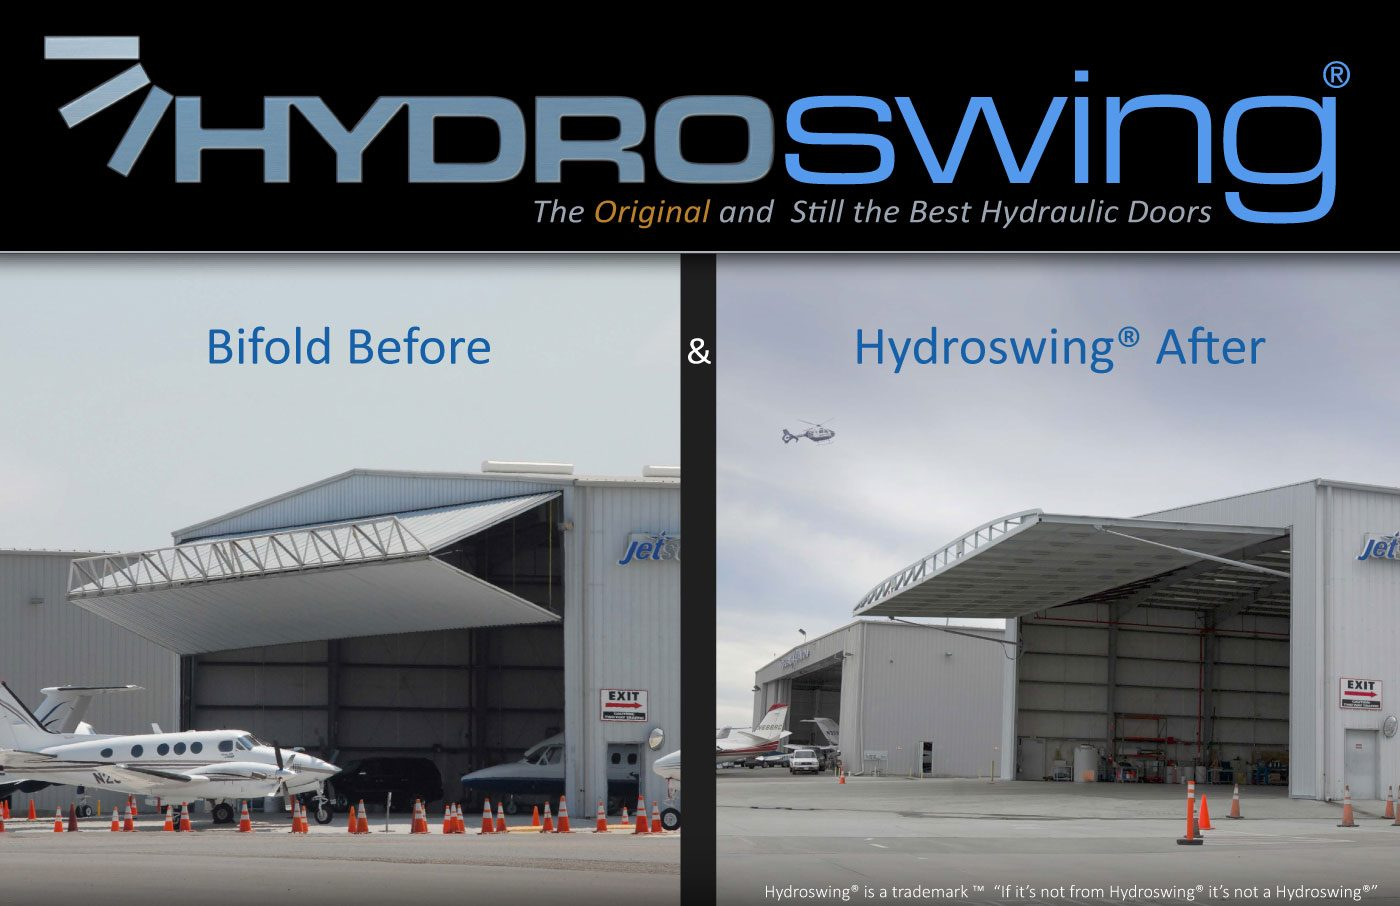 bifold door compared to exterior hydroswing hydraulic door.jpg